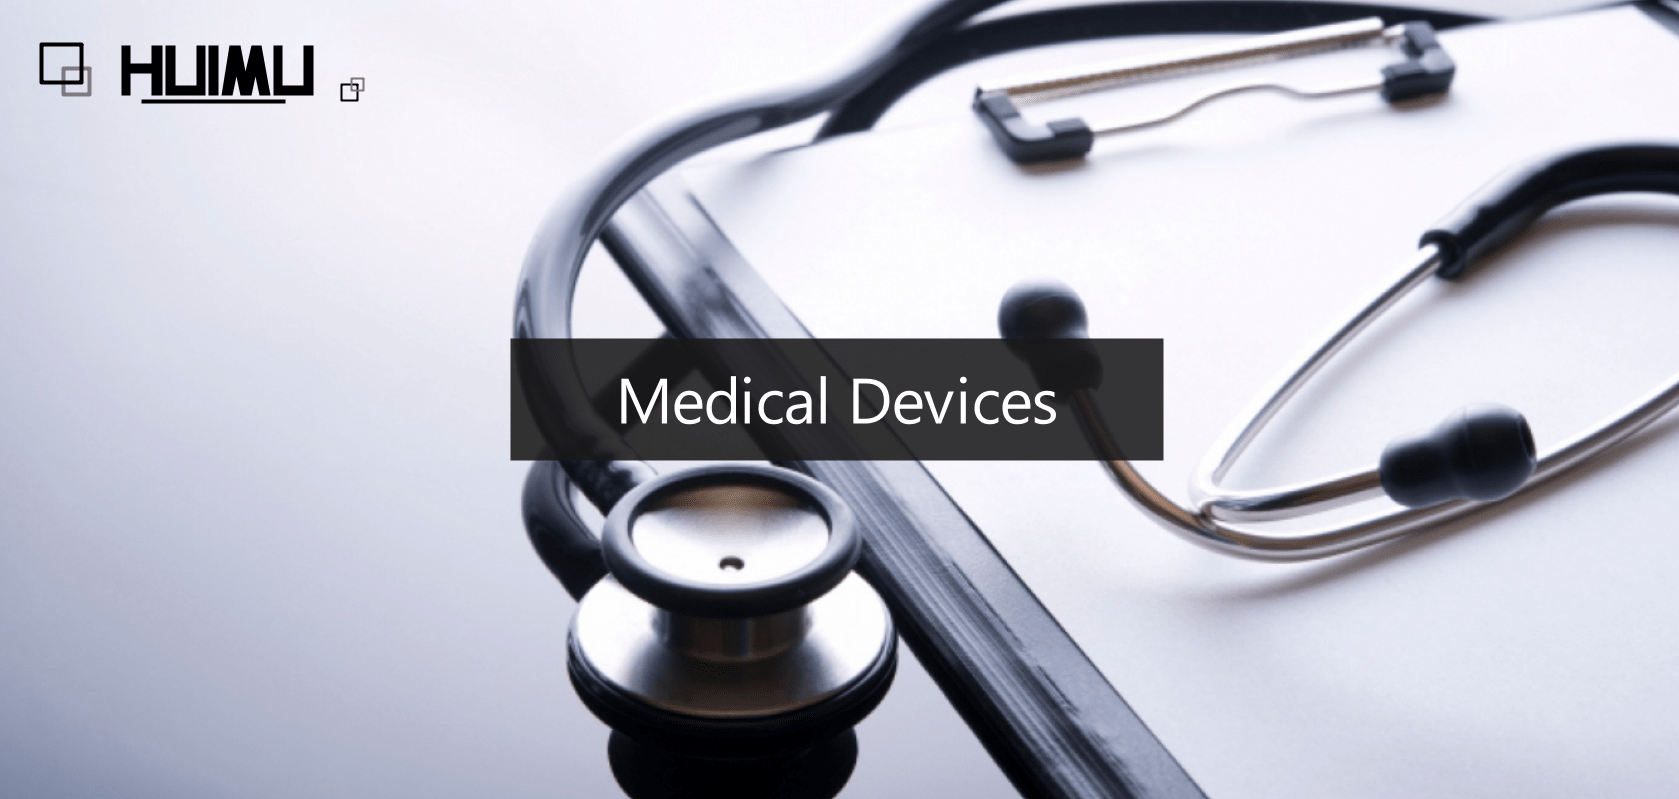 Medical Devices)